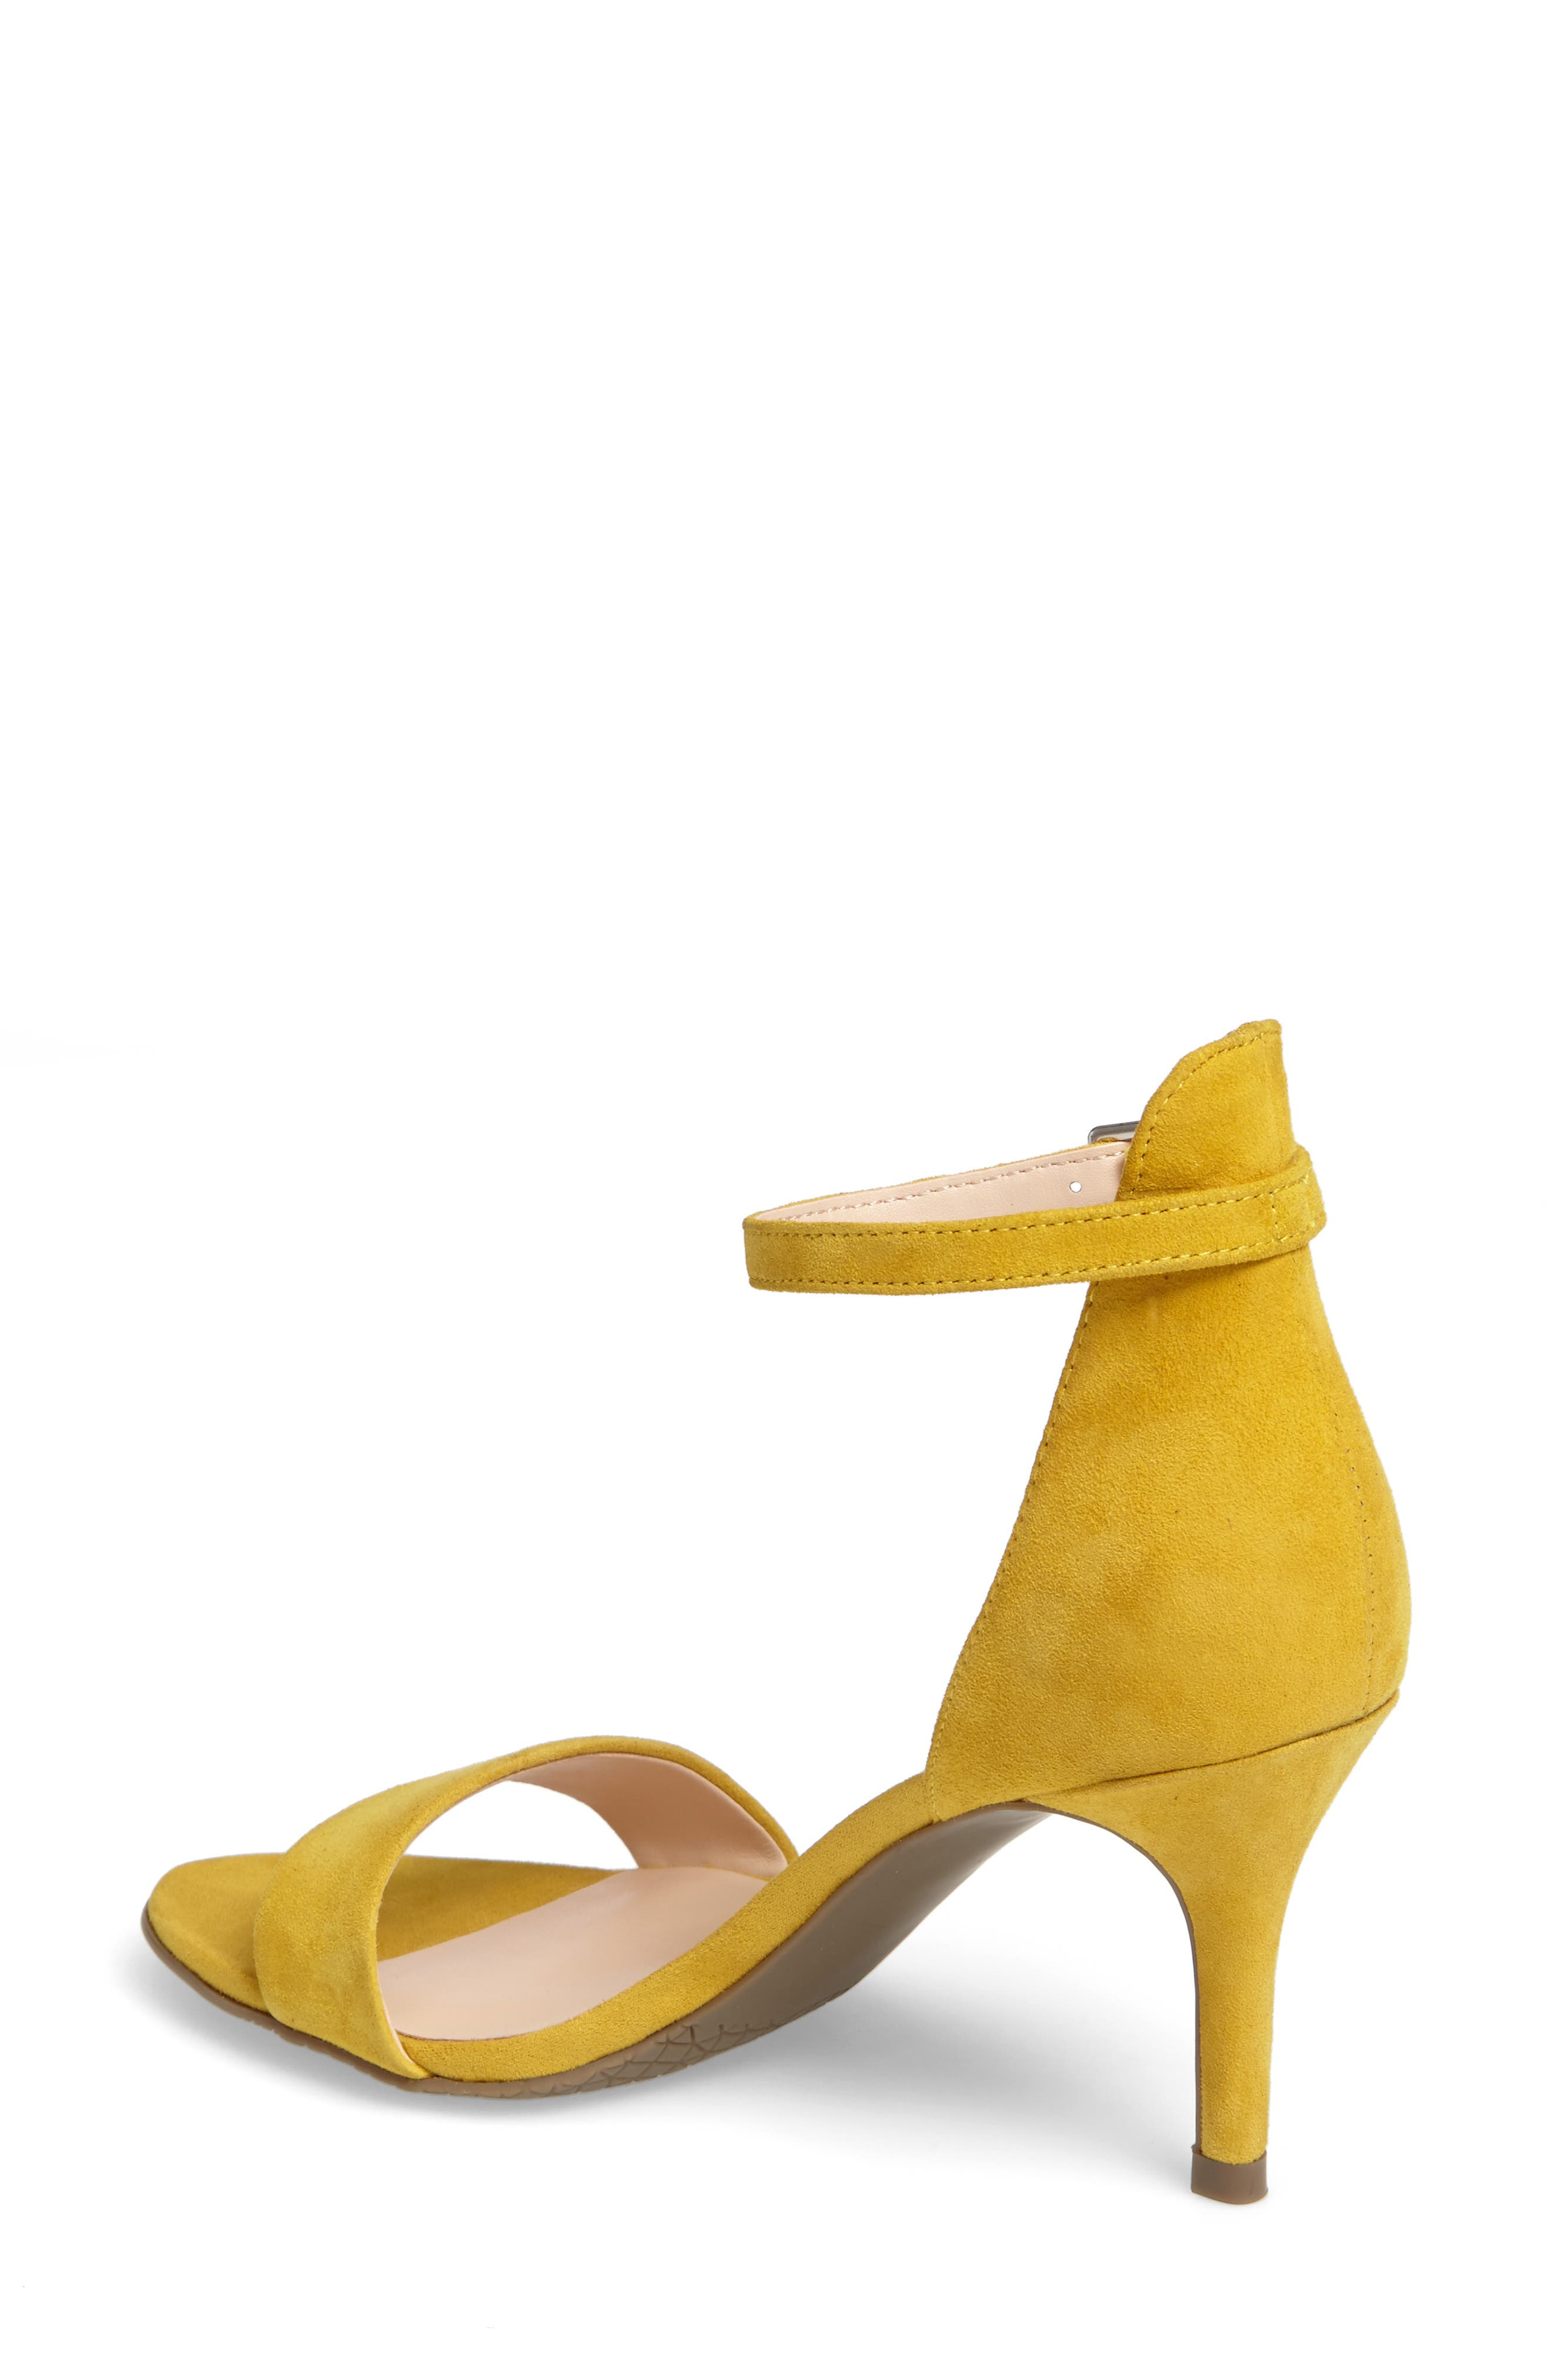 'Luminate' Open Toe Dress Sandal,                             Alternate thumbnail 93, color,